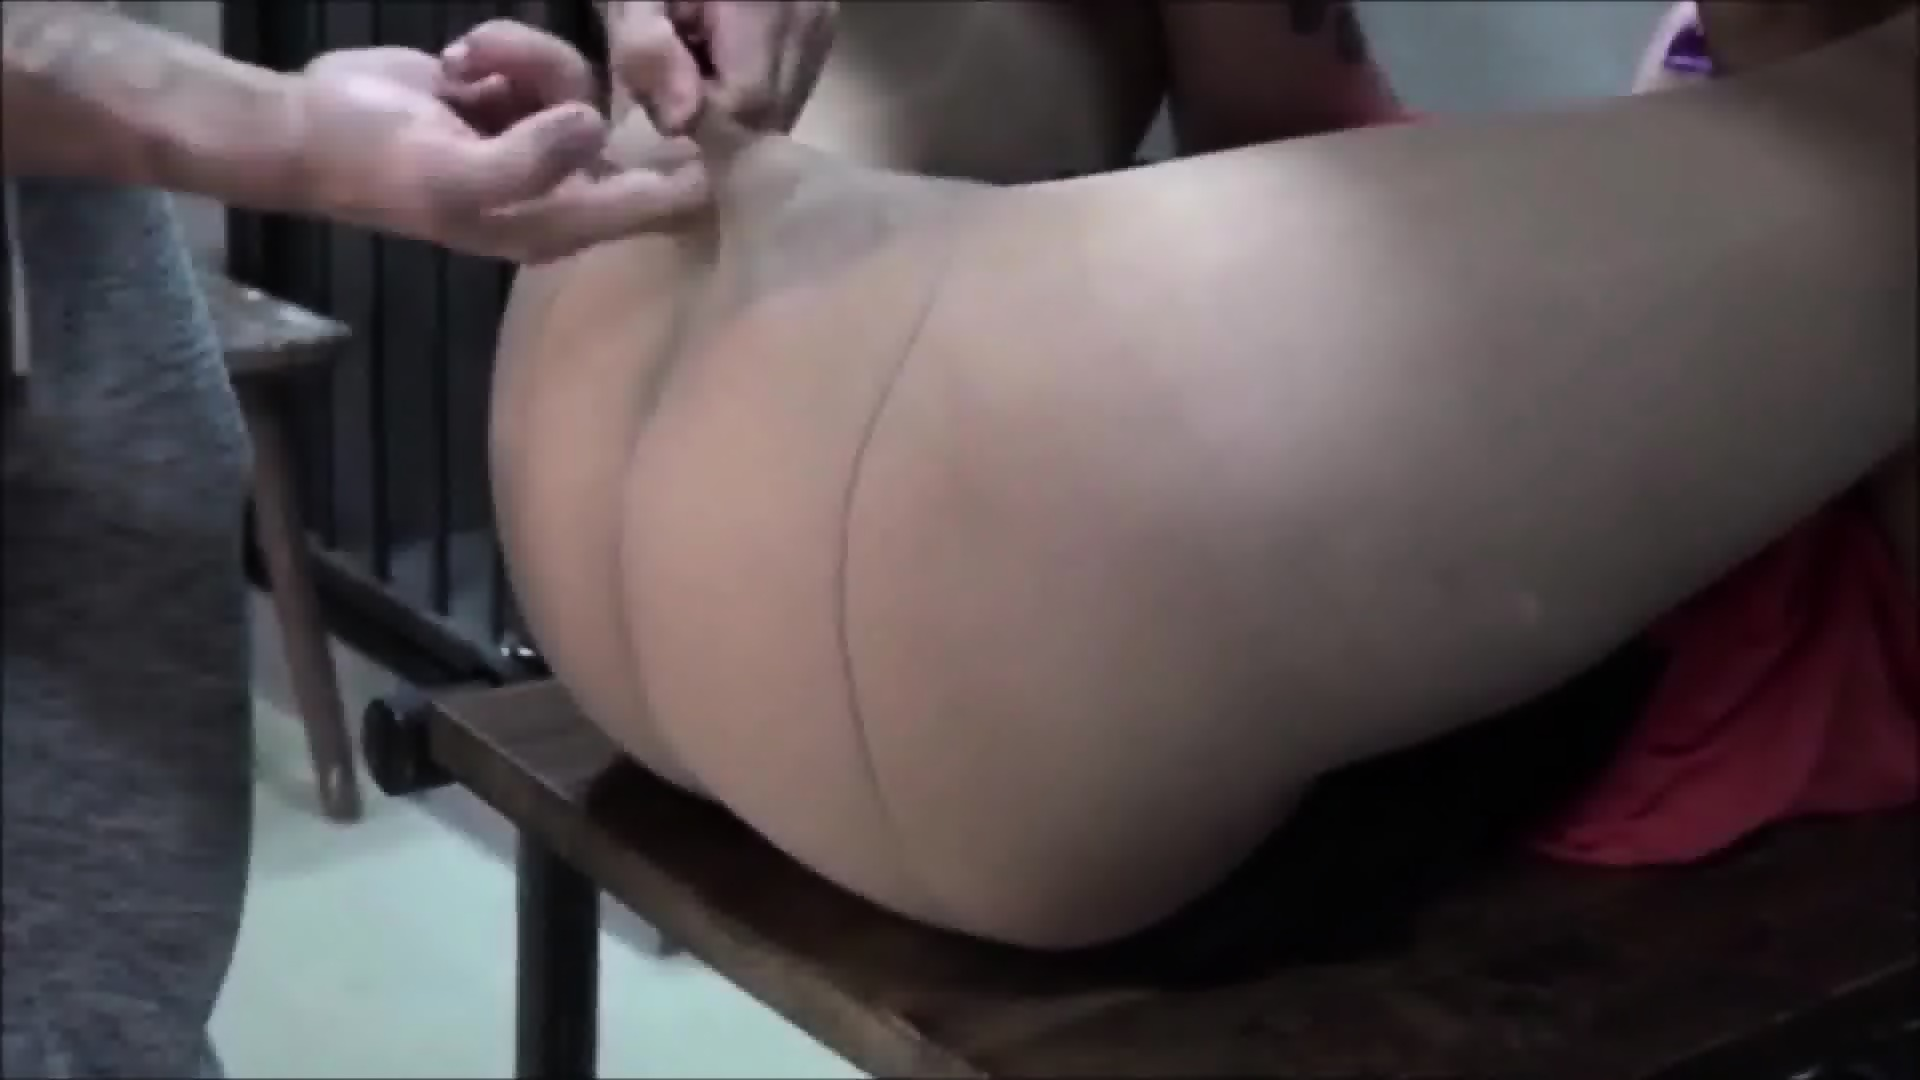 Puerto rican tits and ass